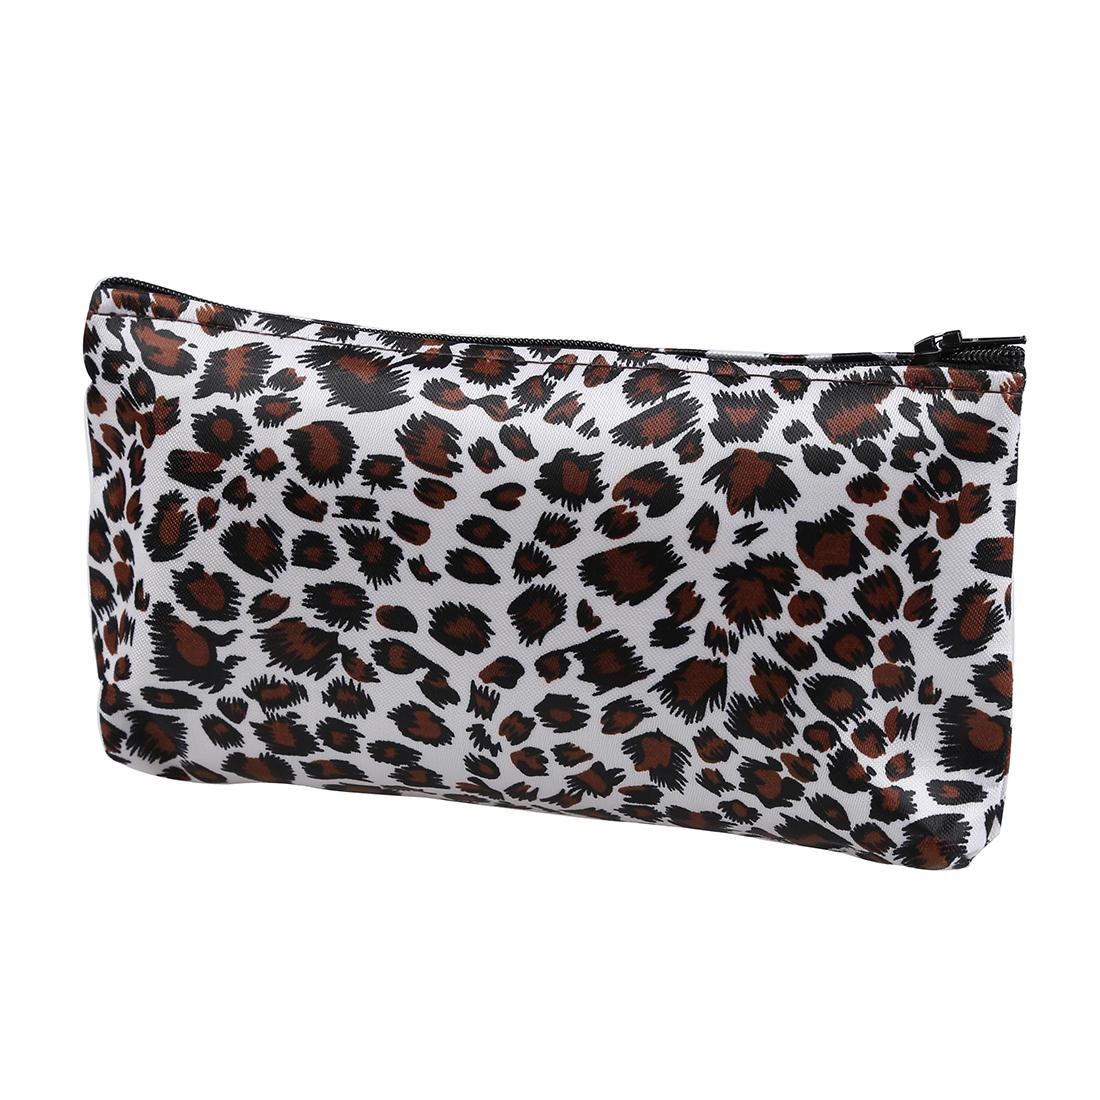 d7095783d7d0 Wholesale- VSEN Hot Women Zippered Leopard Print Cosmetic Holder Bag  Printed Cosmetic Bags Cosmetic Bag Bag Cosmetic Bag Online with  $37.54/Piece on ...